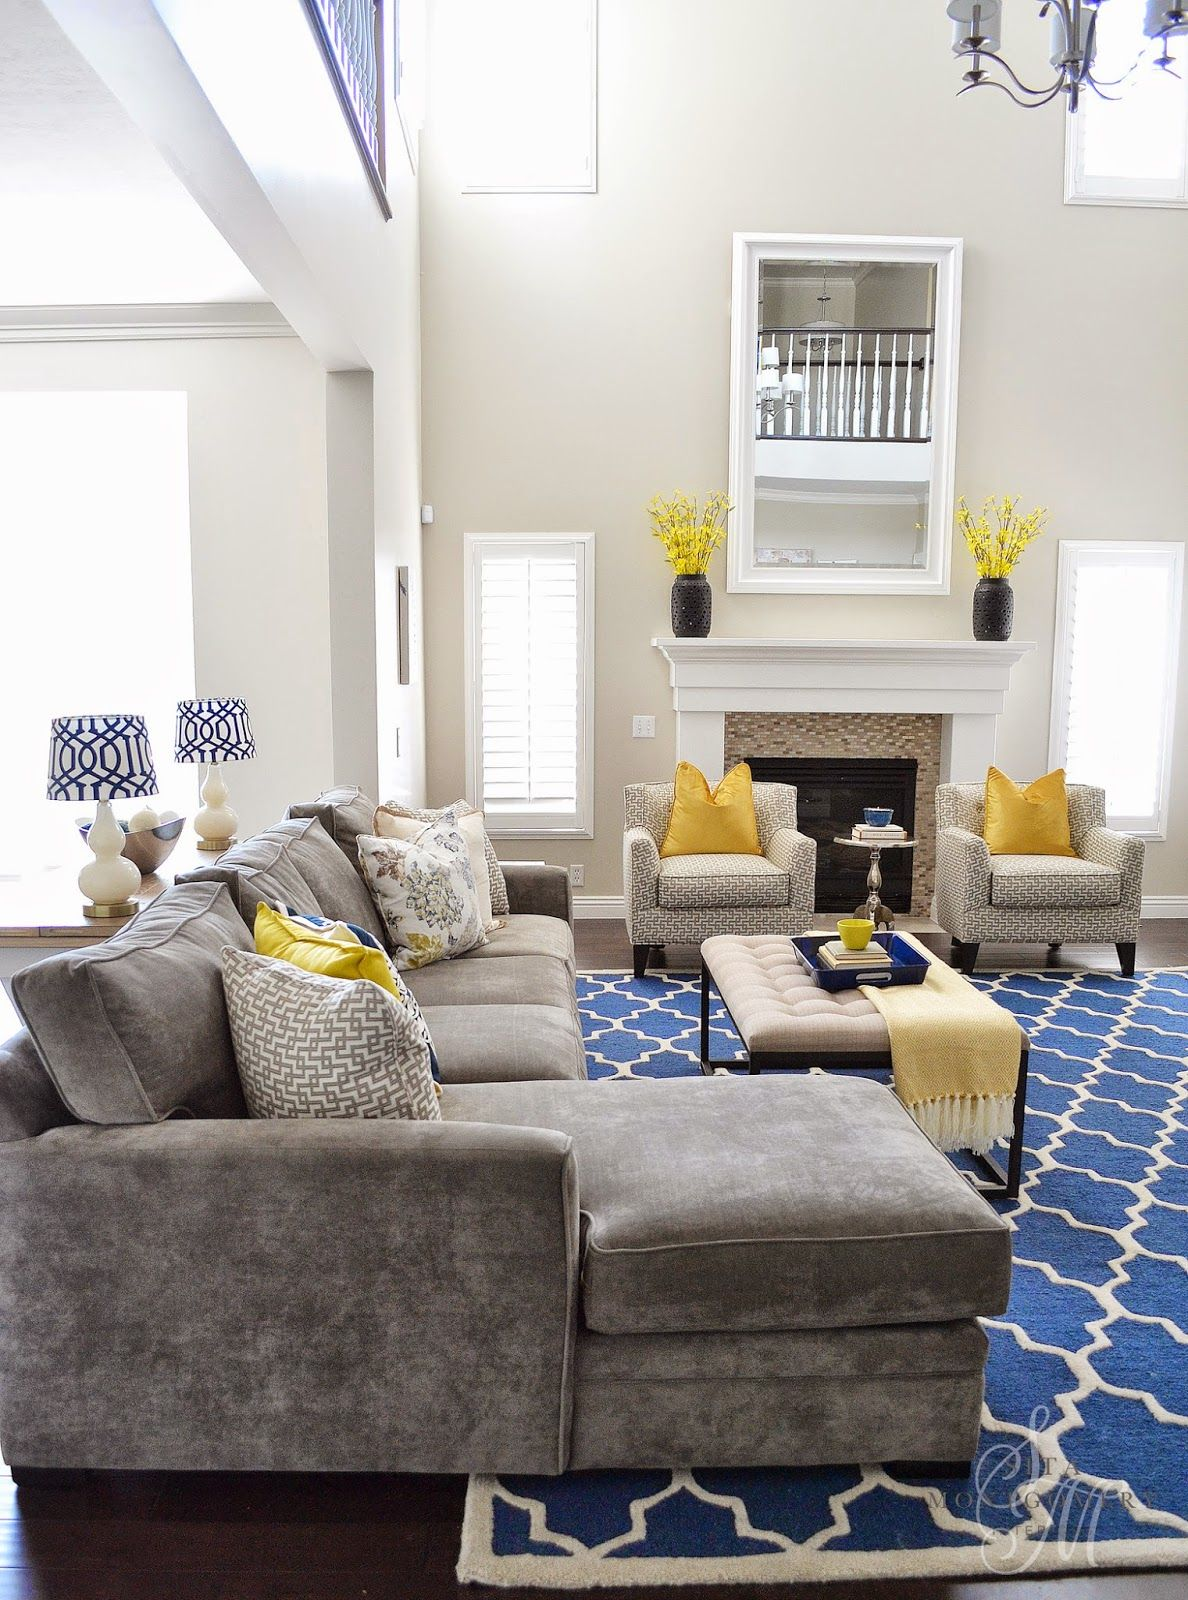 Sita Montgomery Interiors Client Project Reveal The Summerwood Project Renovation Yellow Living Room Yellow Decor Living Room Blue Living Room